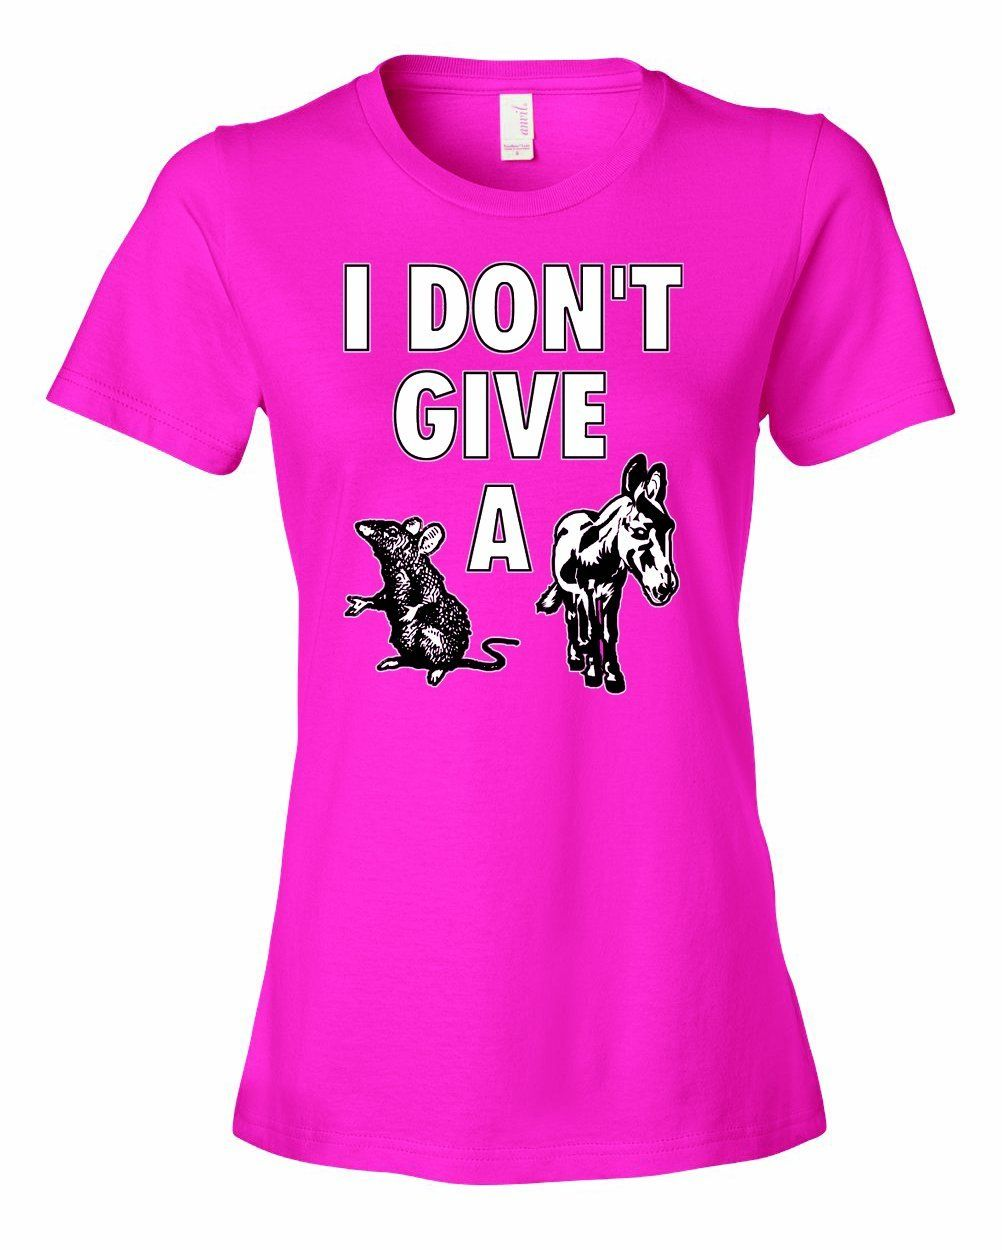 Ladies I Dont Give A Rats Ass. Funny Saying Humor T-Shirt